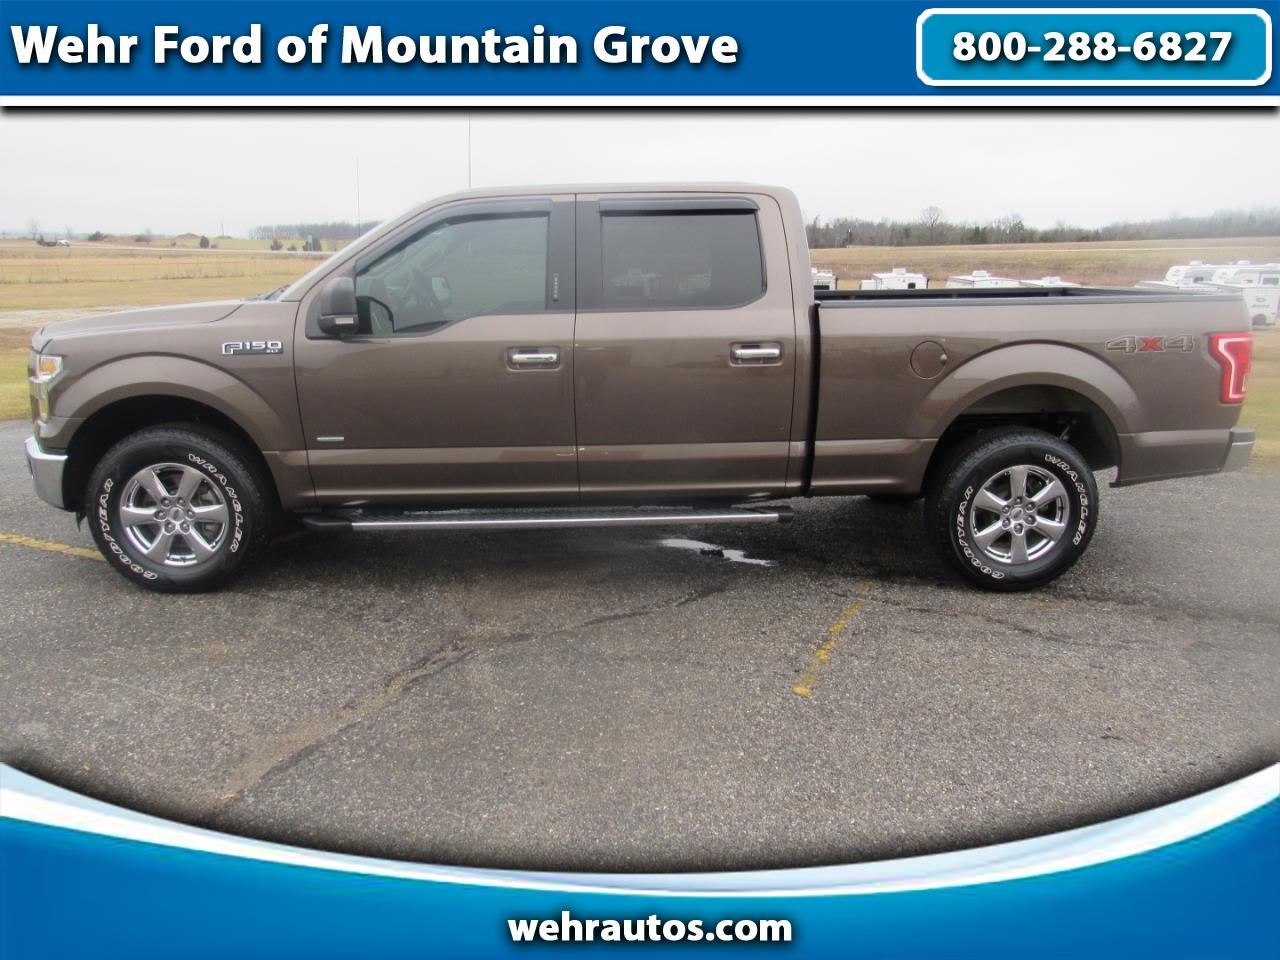 2015 Ford F-150 F150 4WD Supercrew XLT